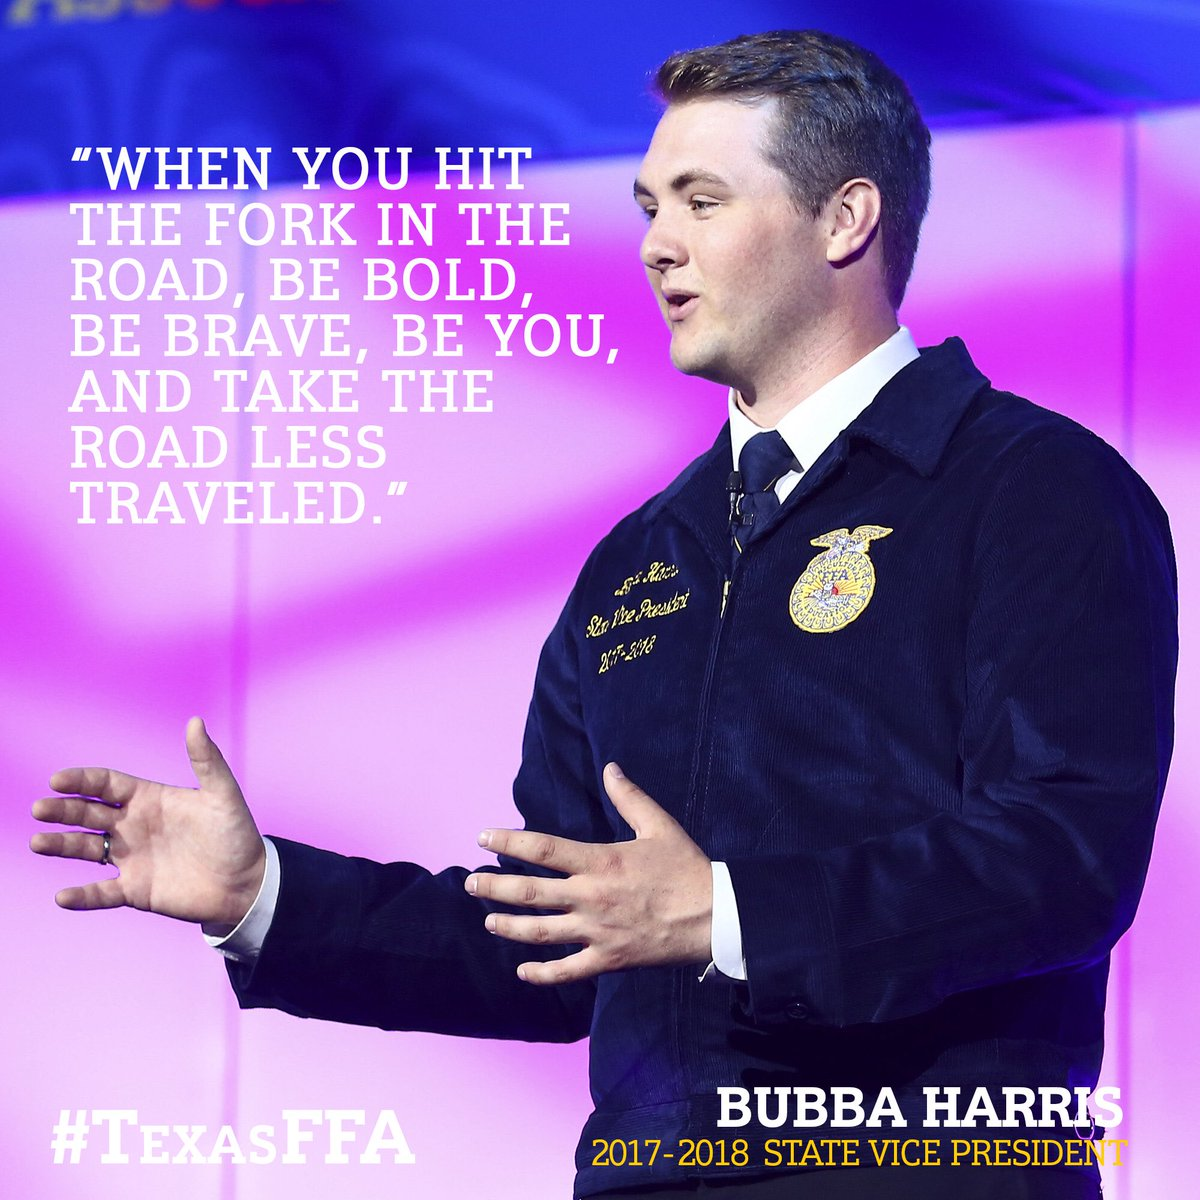 This week's #WisdomWednesday comes from 2017-2018 State Vice President Bubba Harris! #TexasFFA